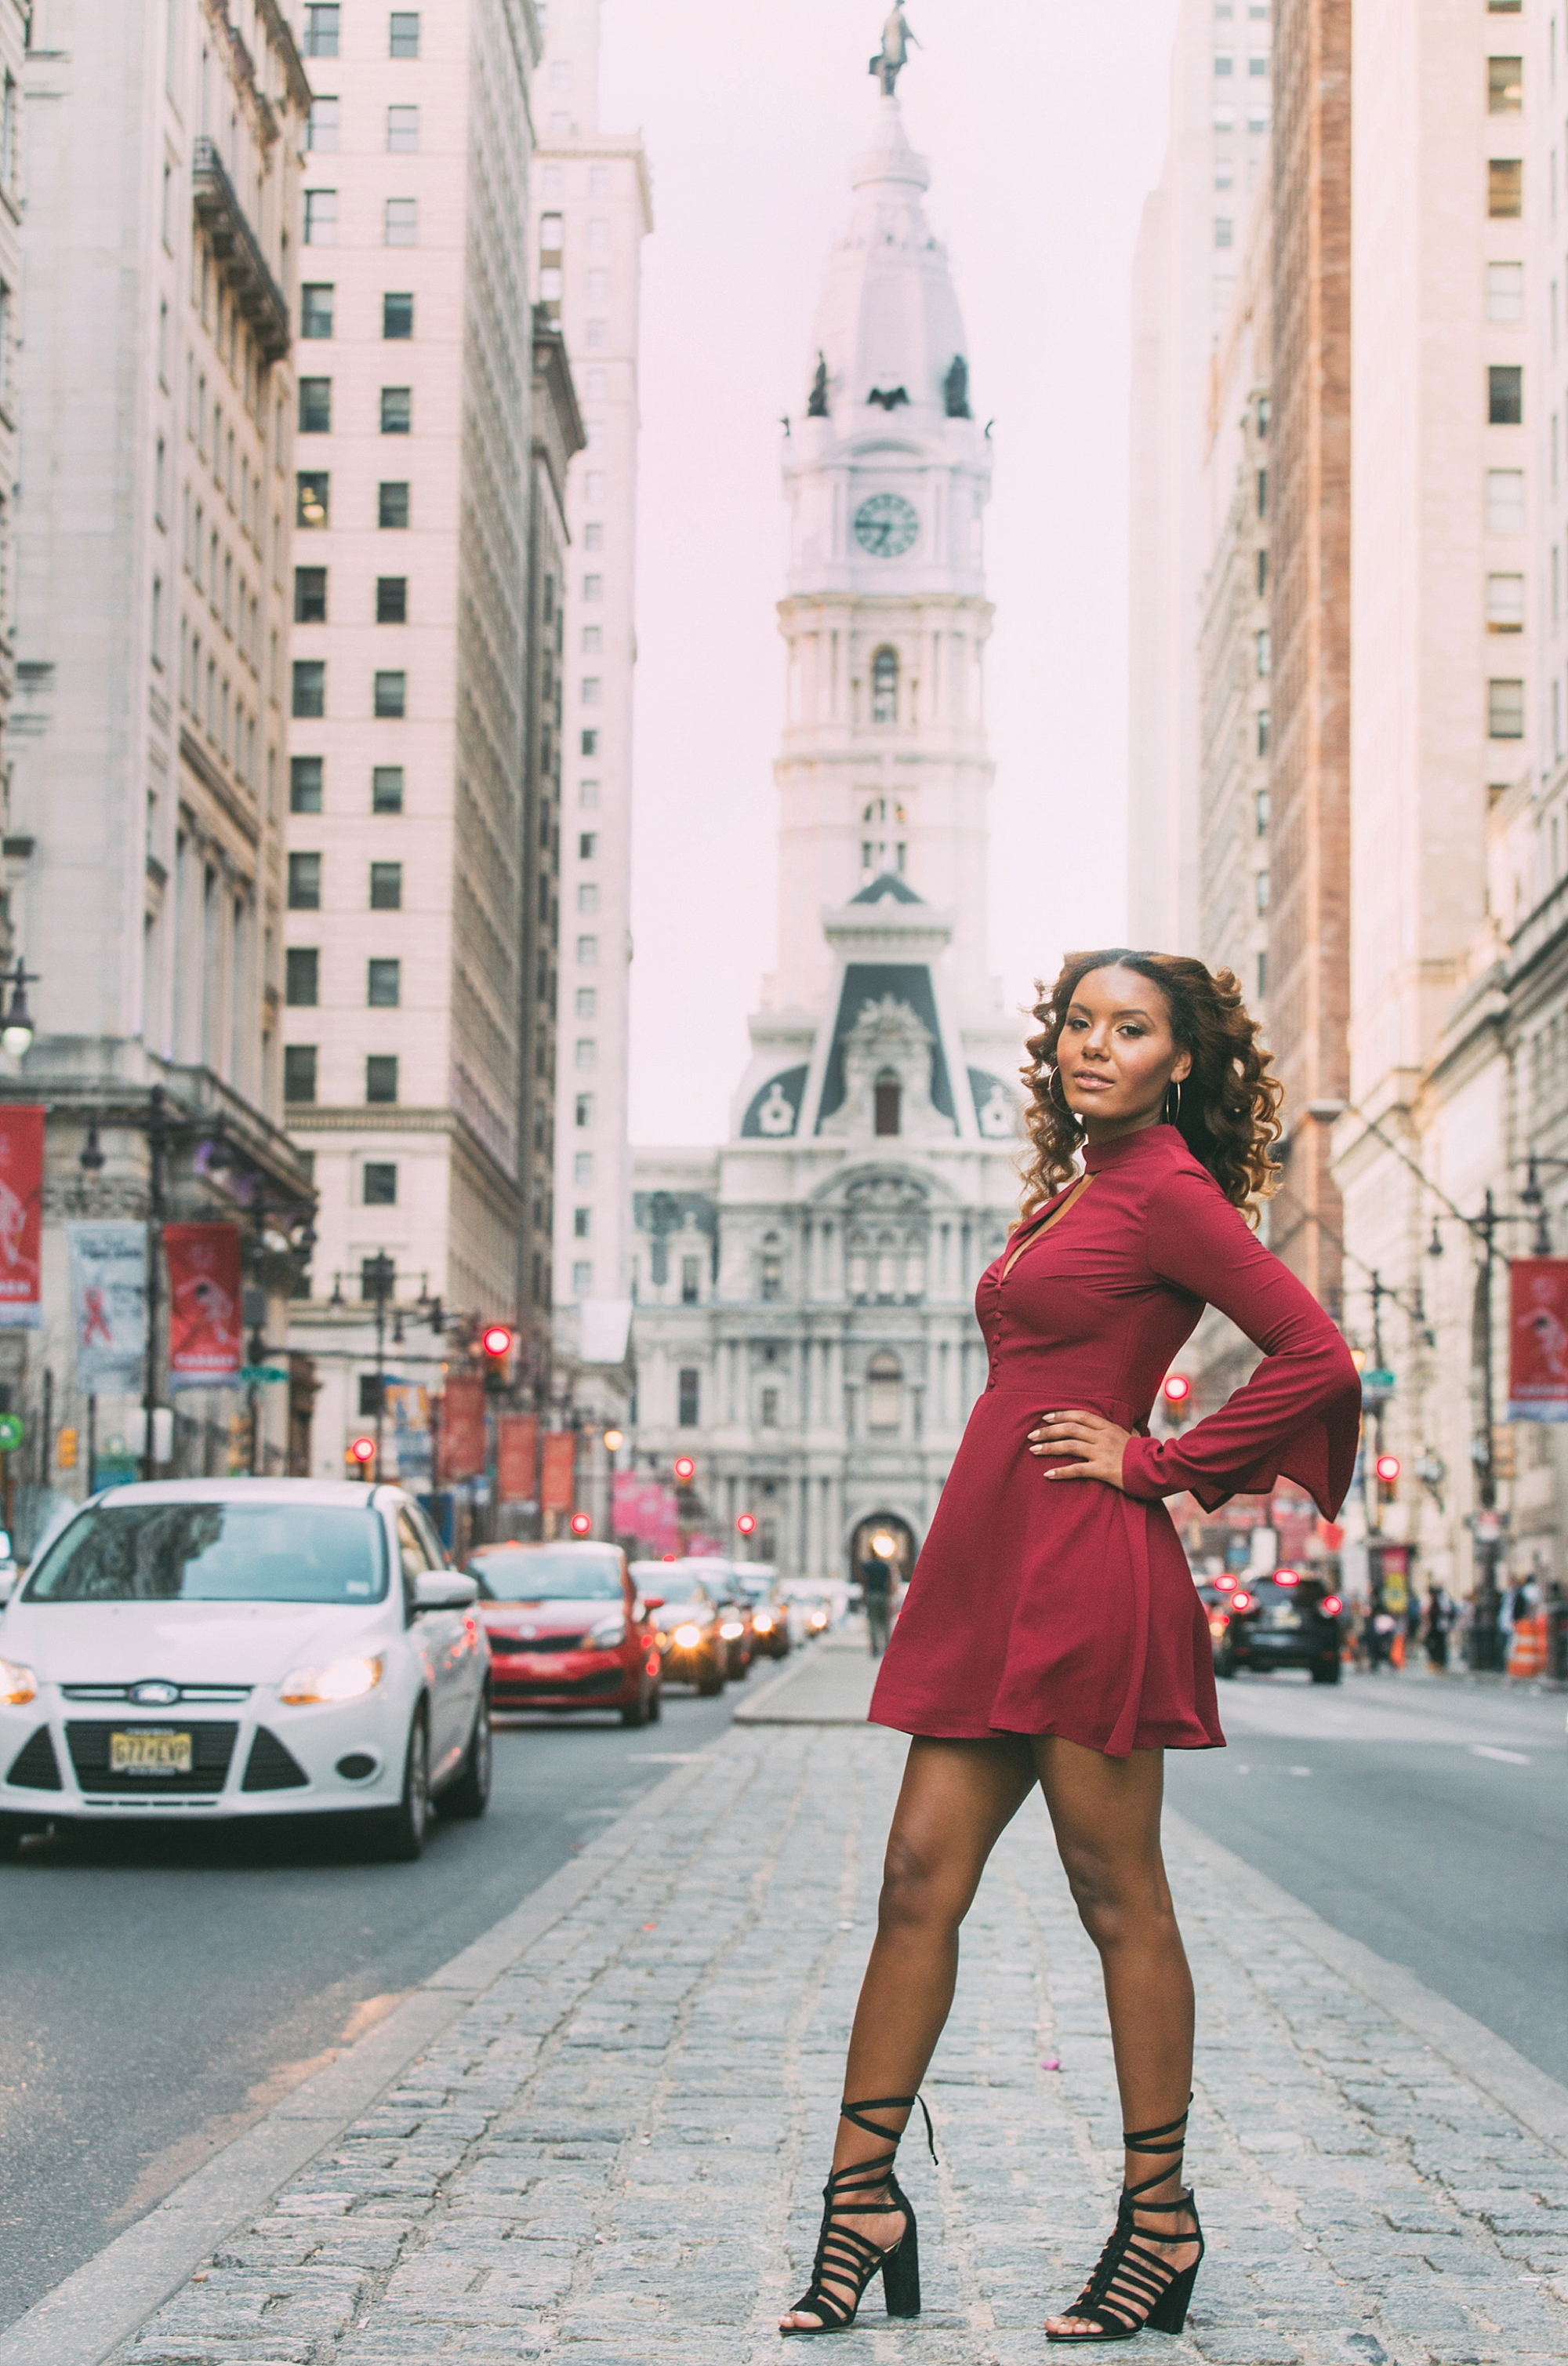 Joe_Mac_Creative_Wedding_Engagements_Photography_Philadelphia_Broad_Street_Proposal_0004.jpg